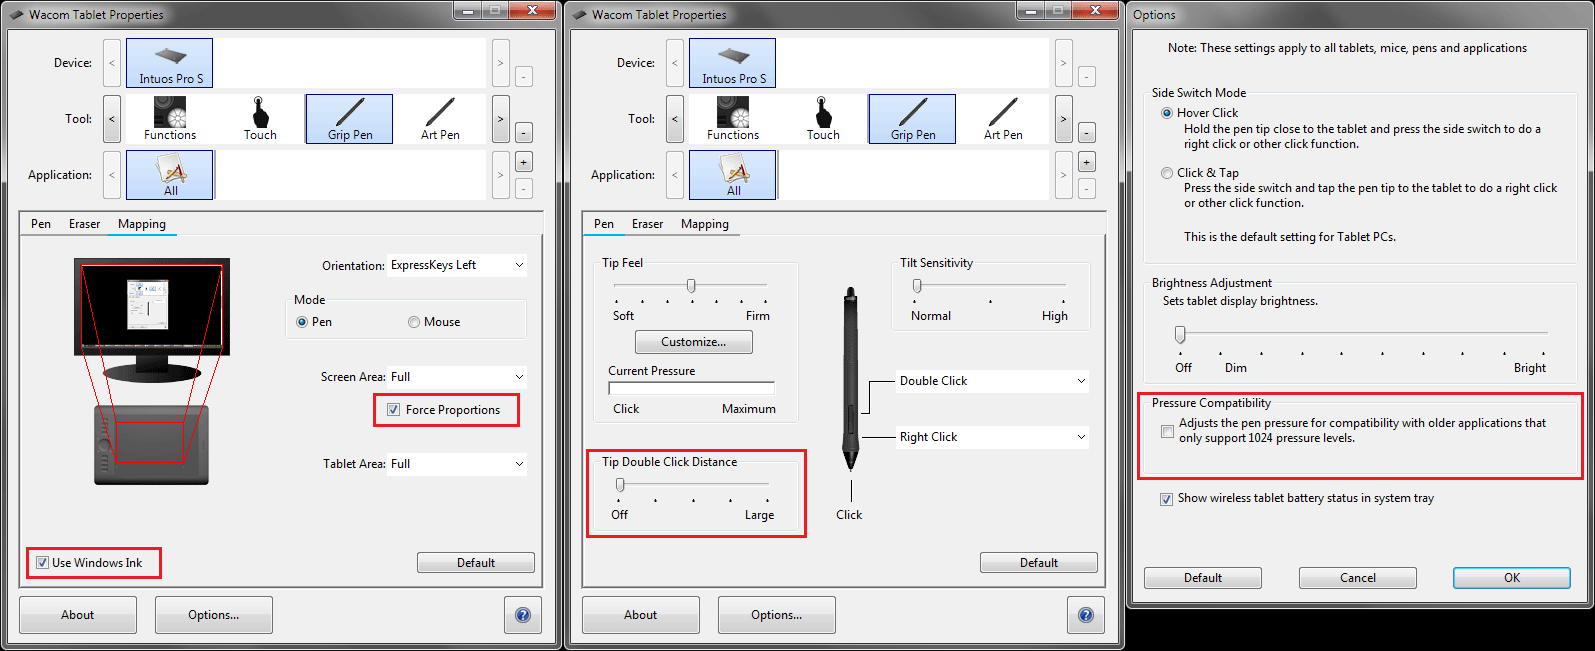 Wacom tablet recommended settings